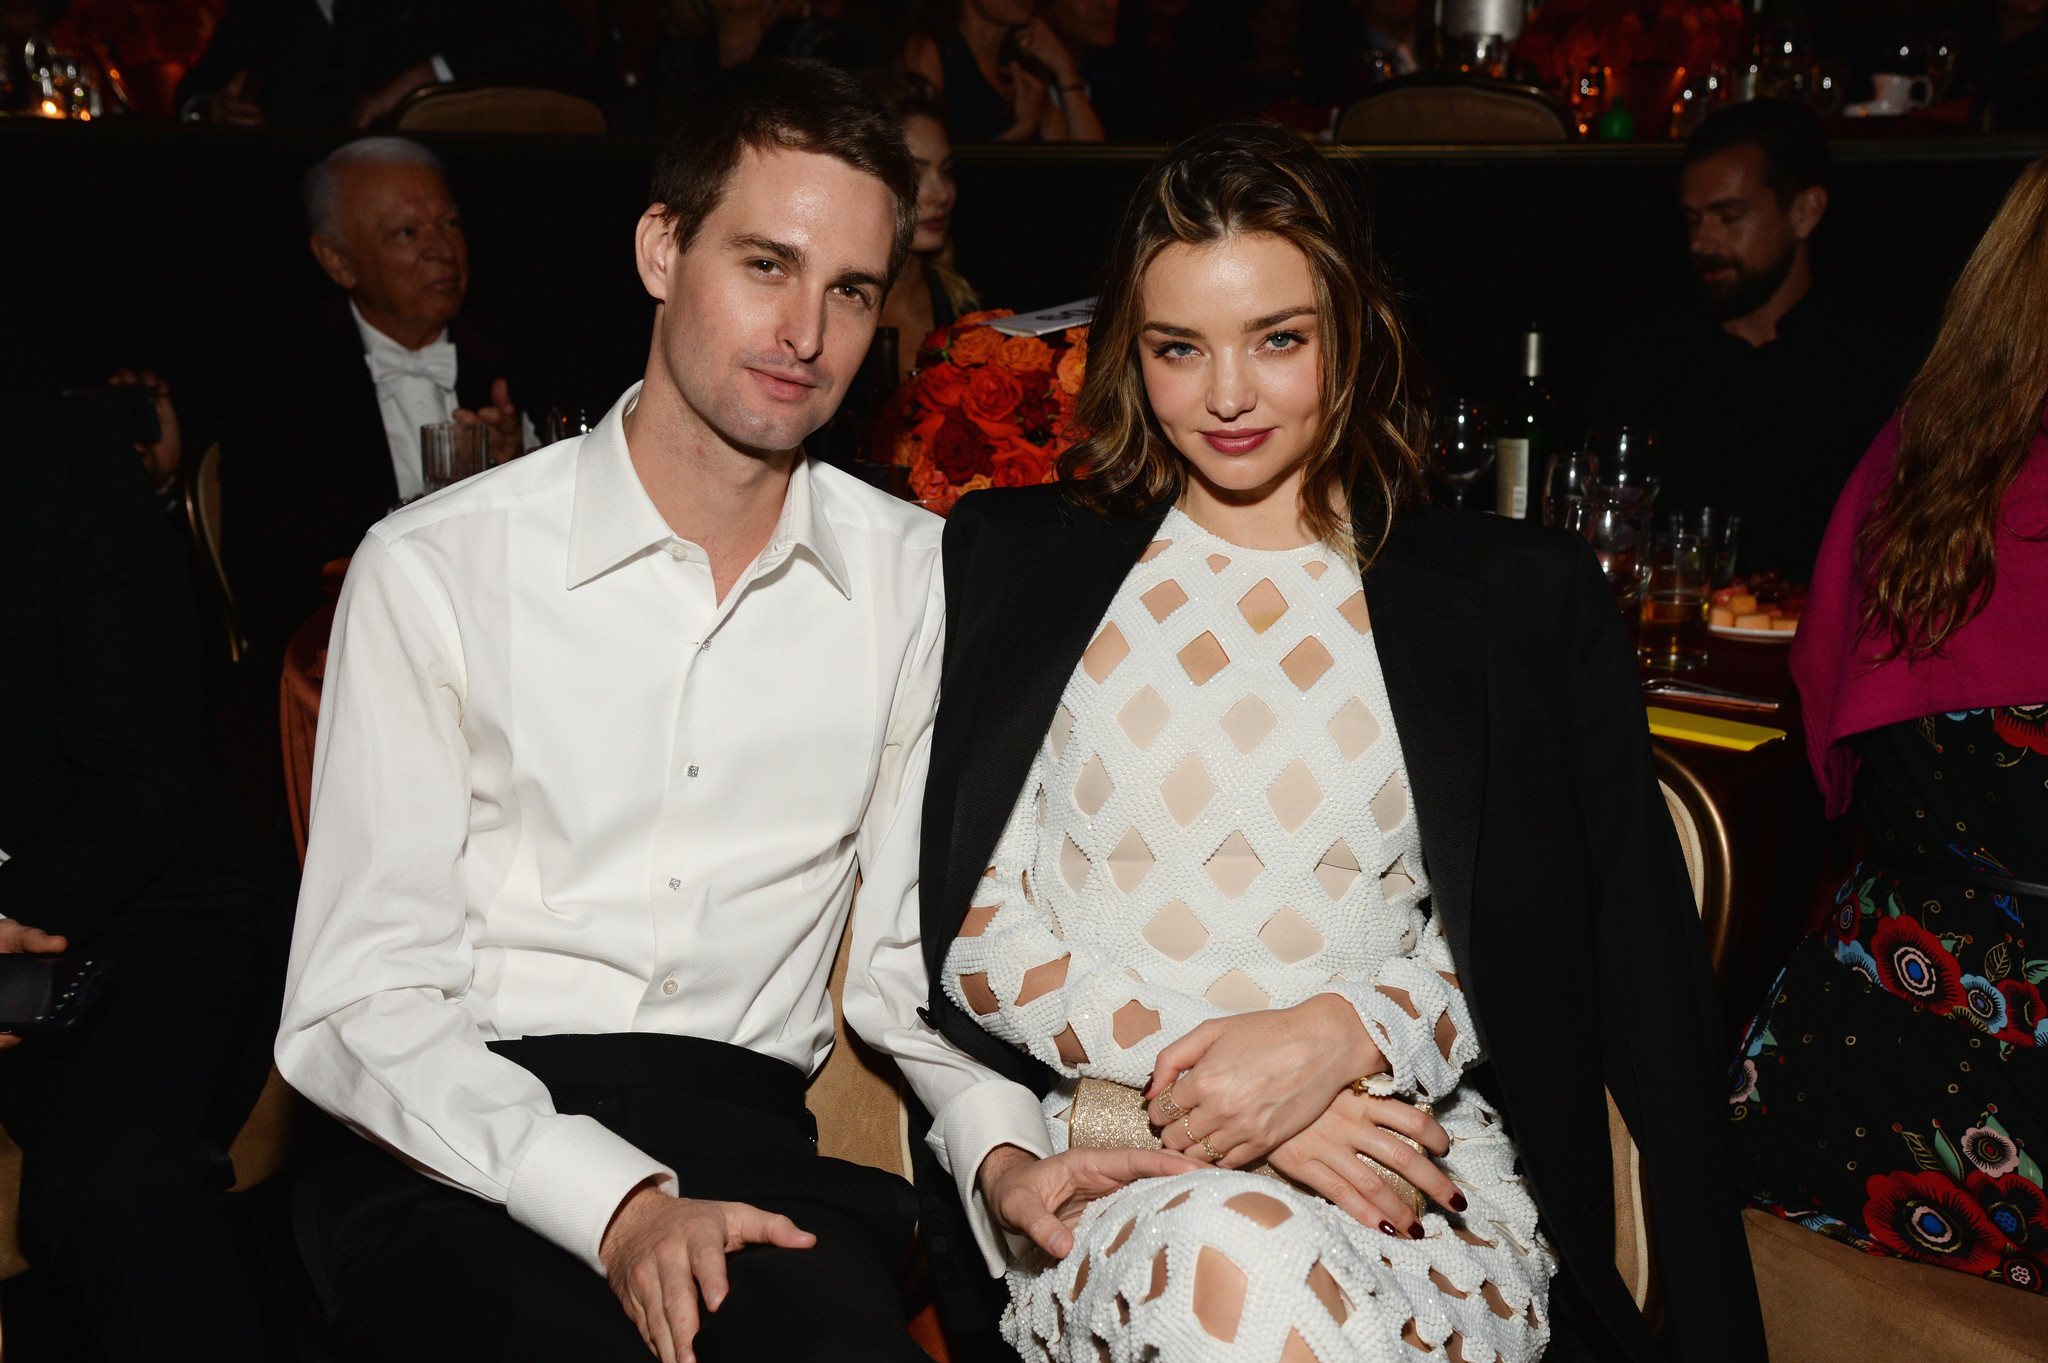 Evan Spiegel and fiancee Miranda Kerr at an event at the Beverly Hilton Hotel last year.